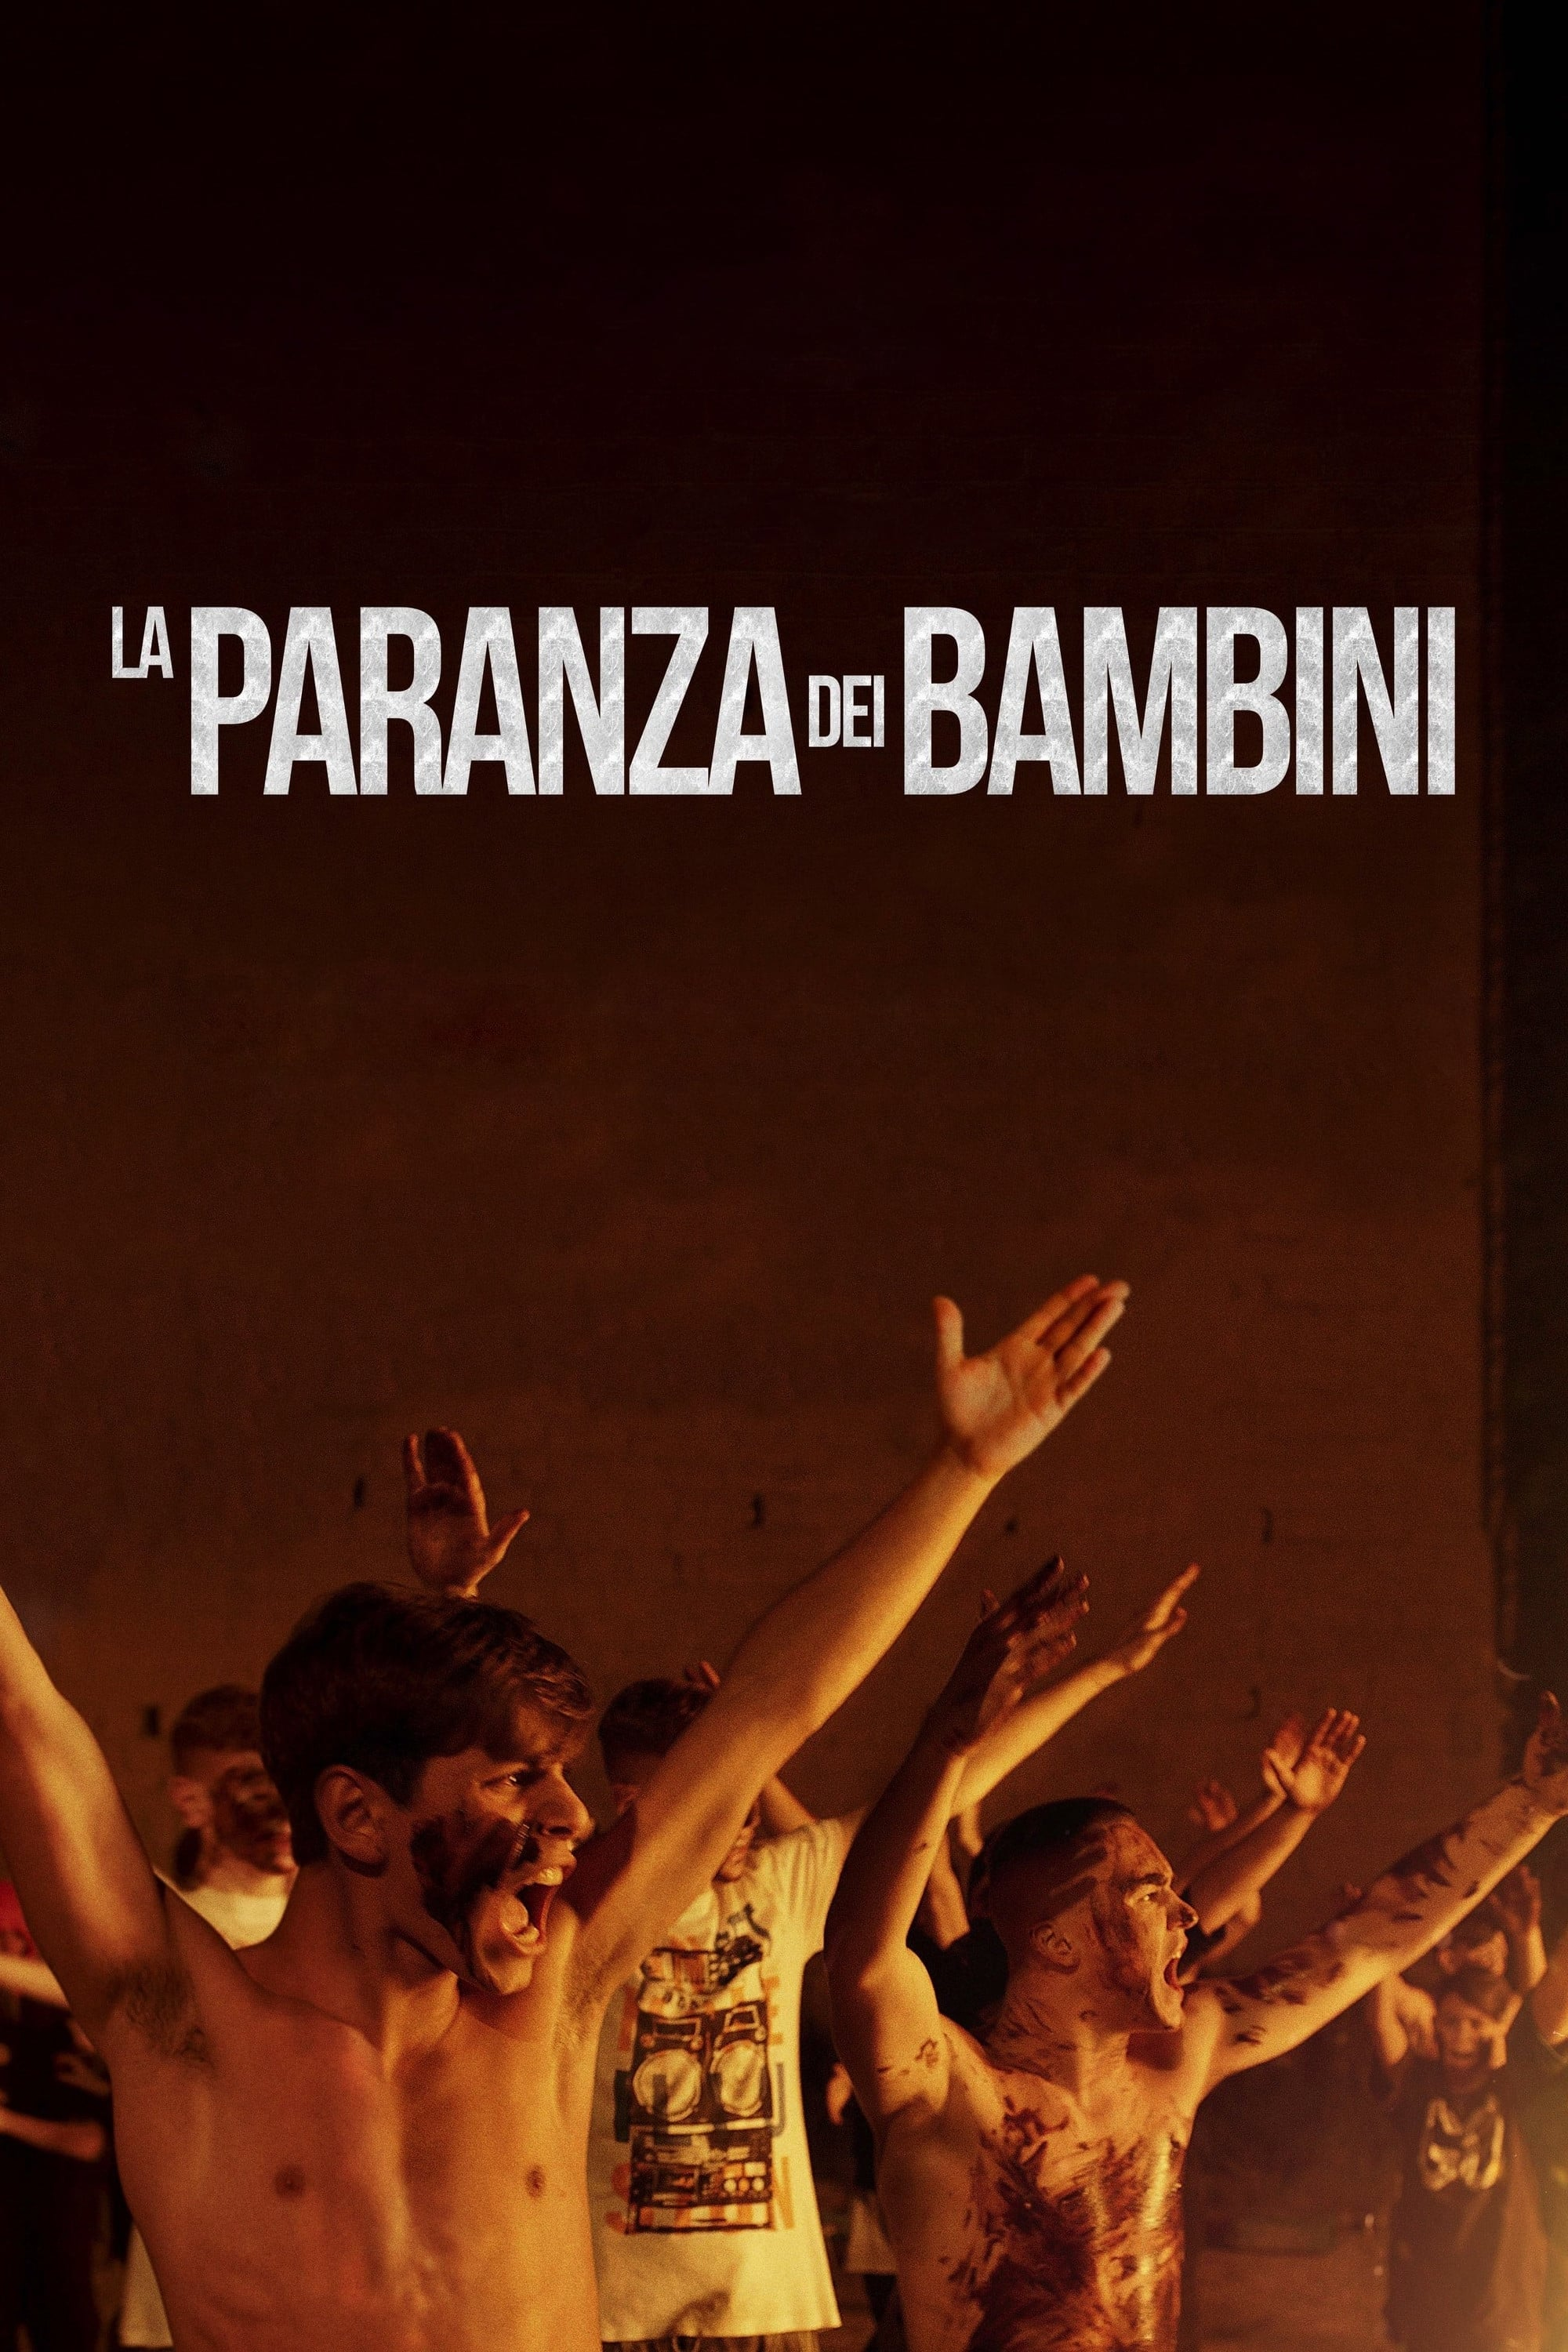 La Paranza dei bambini streaming sur zone telechargement